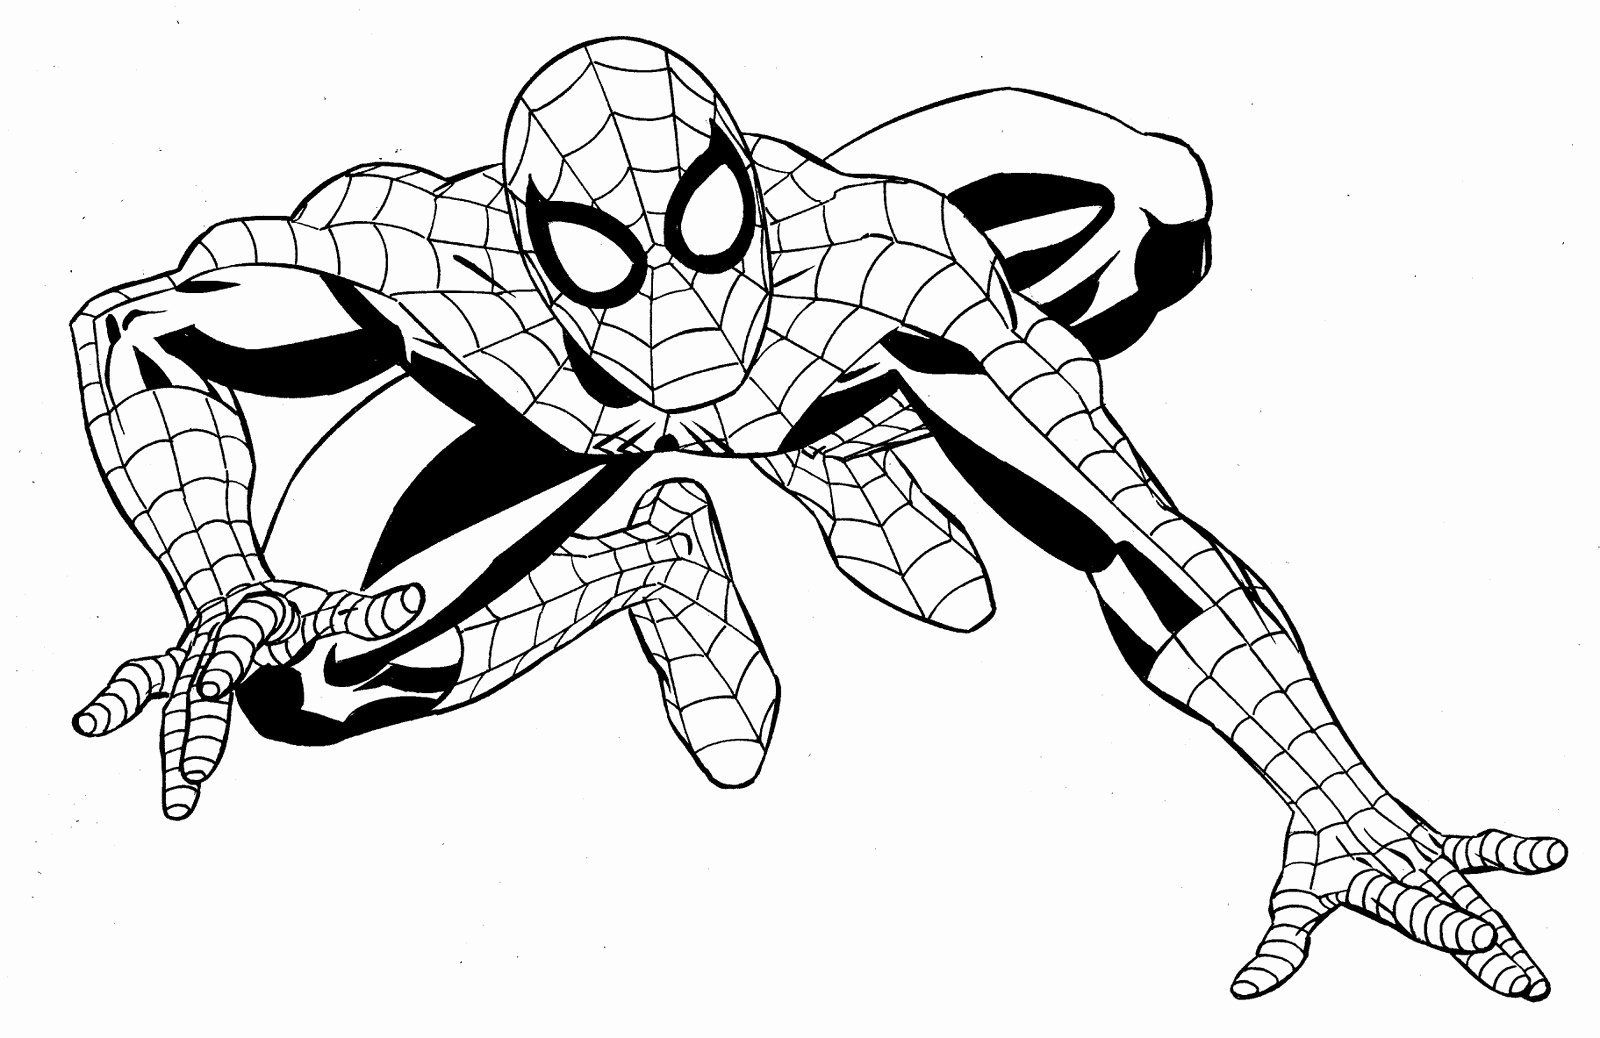 Super Hero Coloring Pages Inspirational Scott Koblish October 2011 In 2021 Superhero Coloring Superhero Coloring Pages Cartoon Coloring Pages